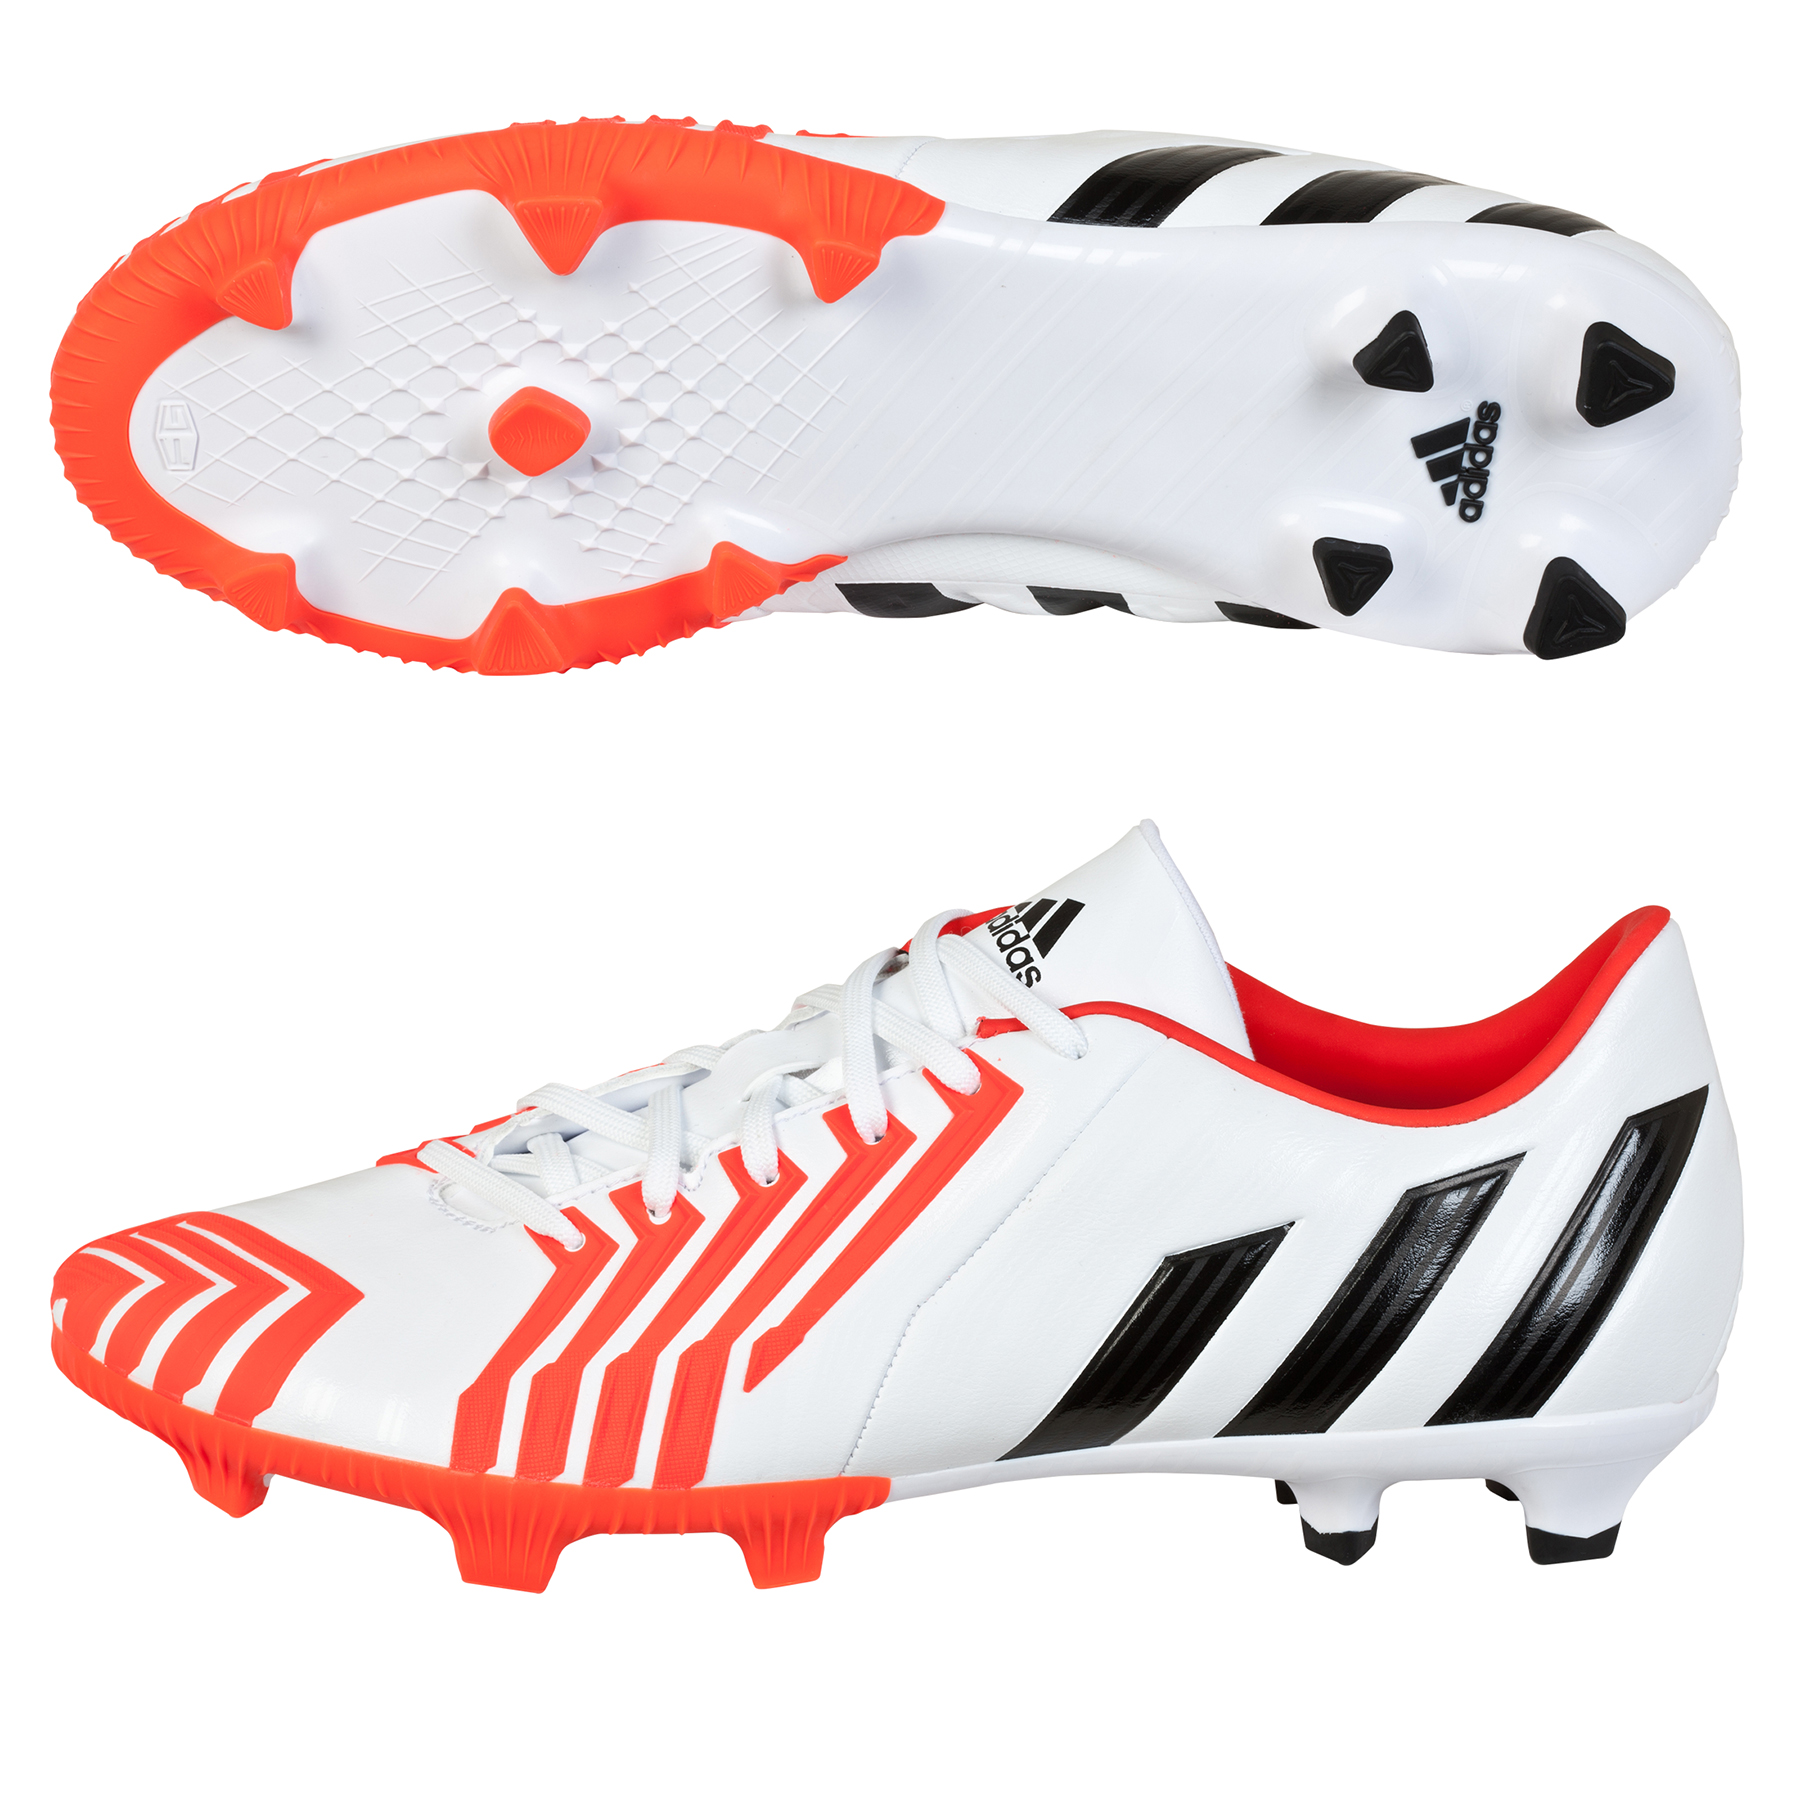 Adidas Predator Absolion Instinct Firm Ground Football Boots White